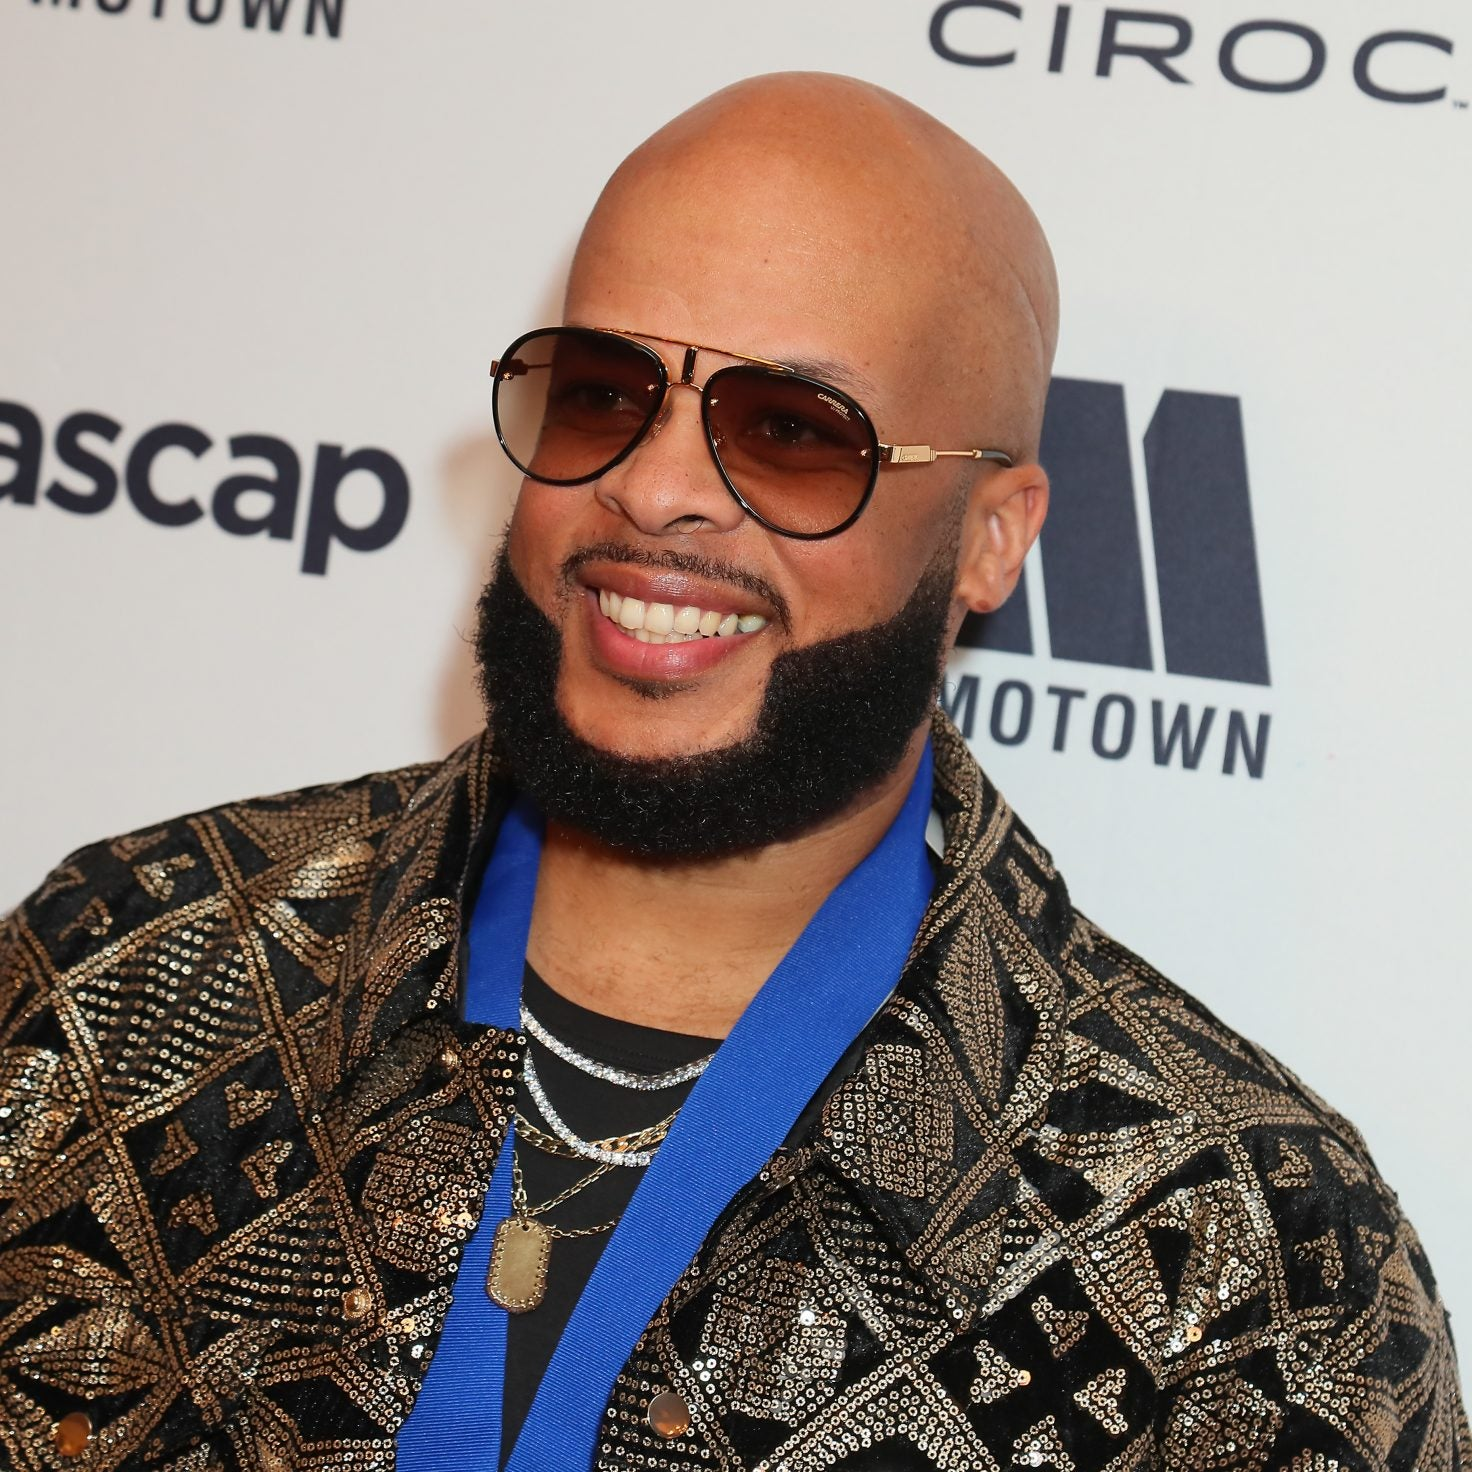 Gospel Artist James Fortune Tied With Kirk Franklin For Most Gospel Airplay No. 1s